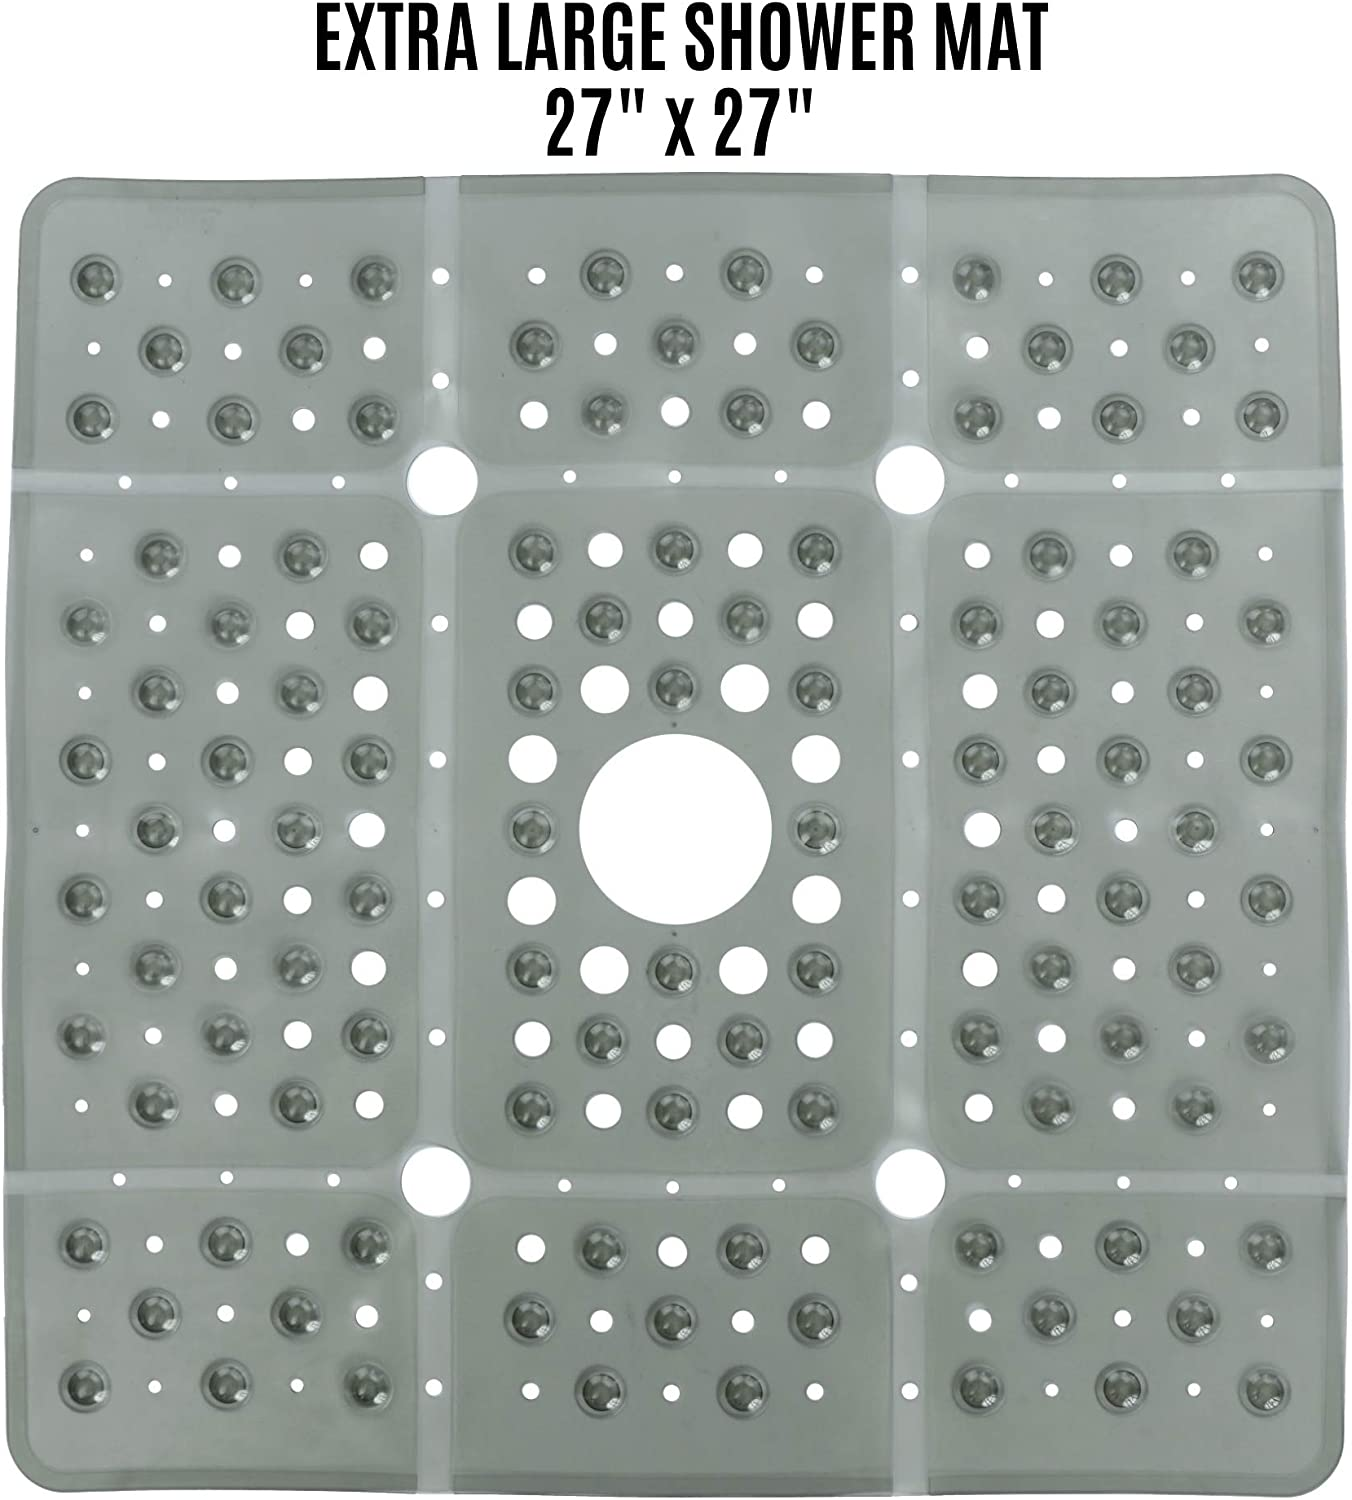 Extra Large Square Shower Mat Provides 65/% More Coverage /& Non-S